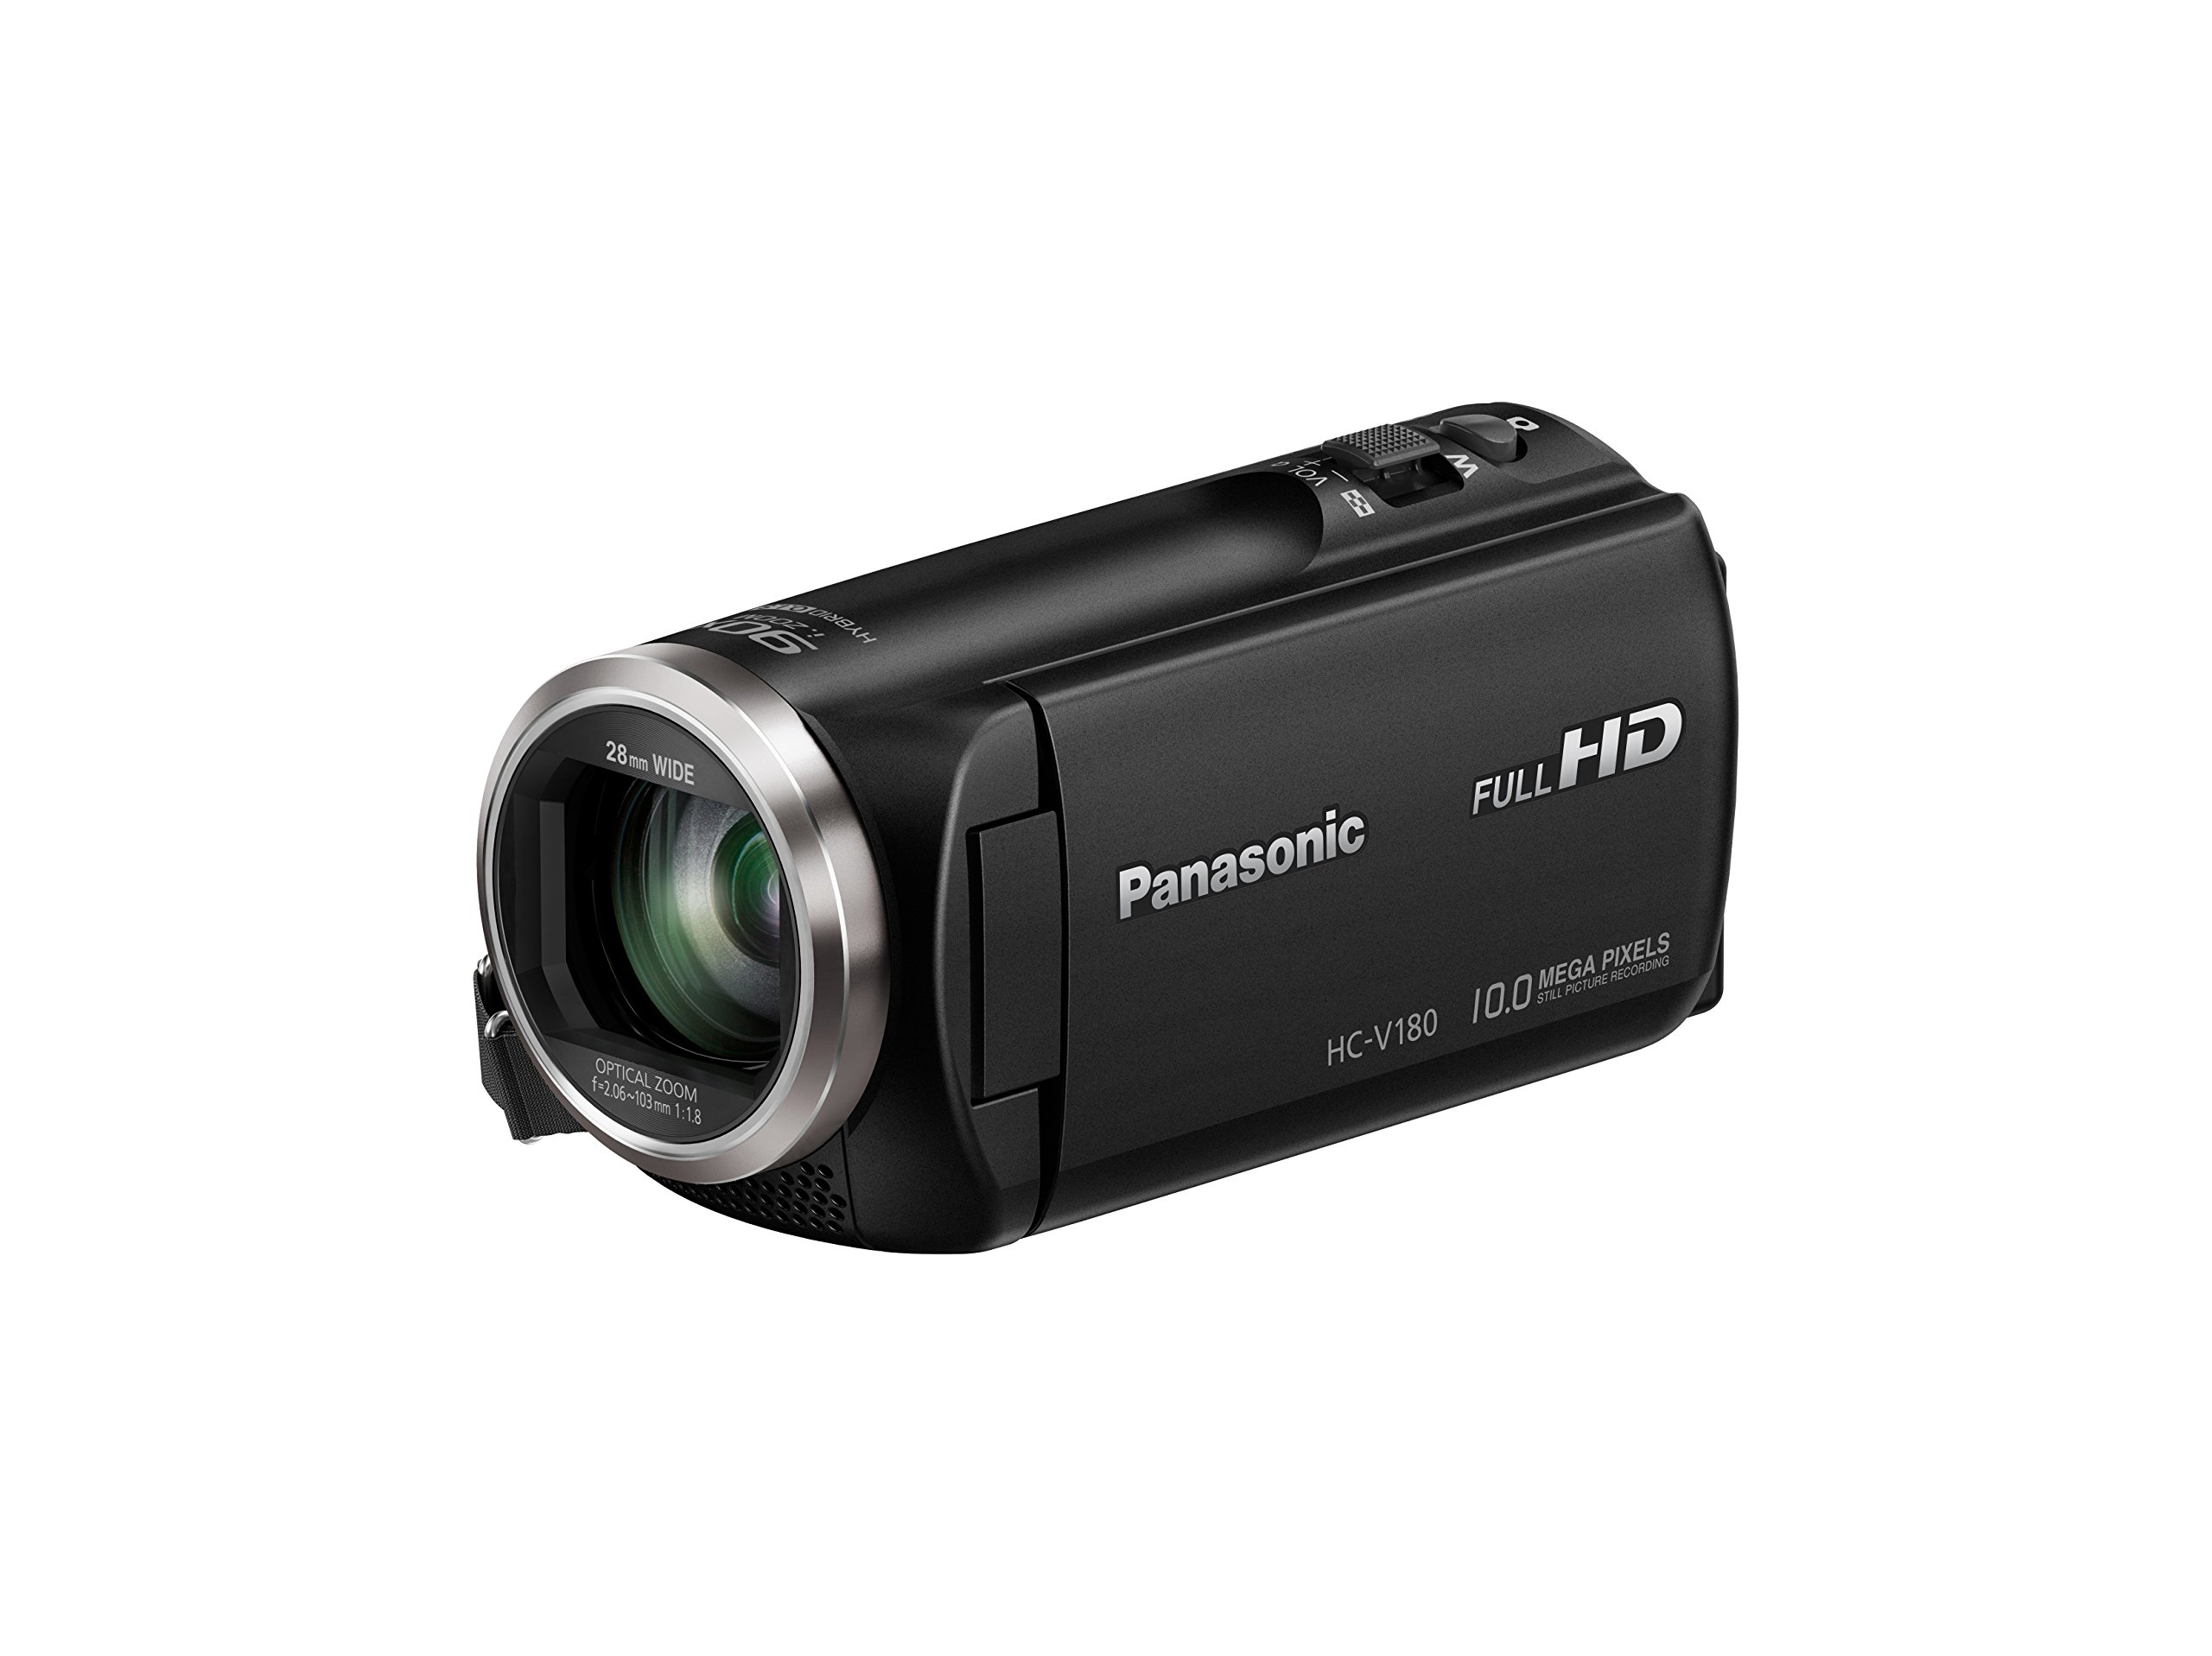 panasonic-full-hd-video-camera-camcorder-hc-v180k-50x-optical-zoom-158-inch-bsi-sensor-touch-enabled-27-inch-lcd-display-black